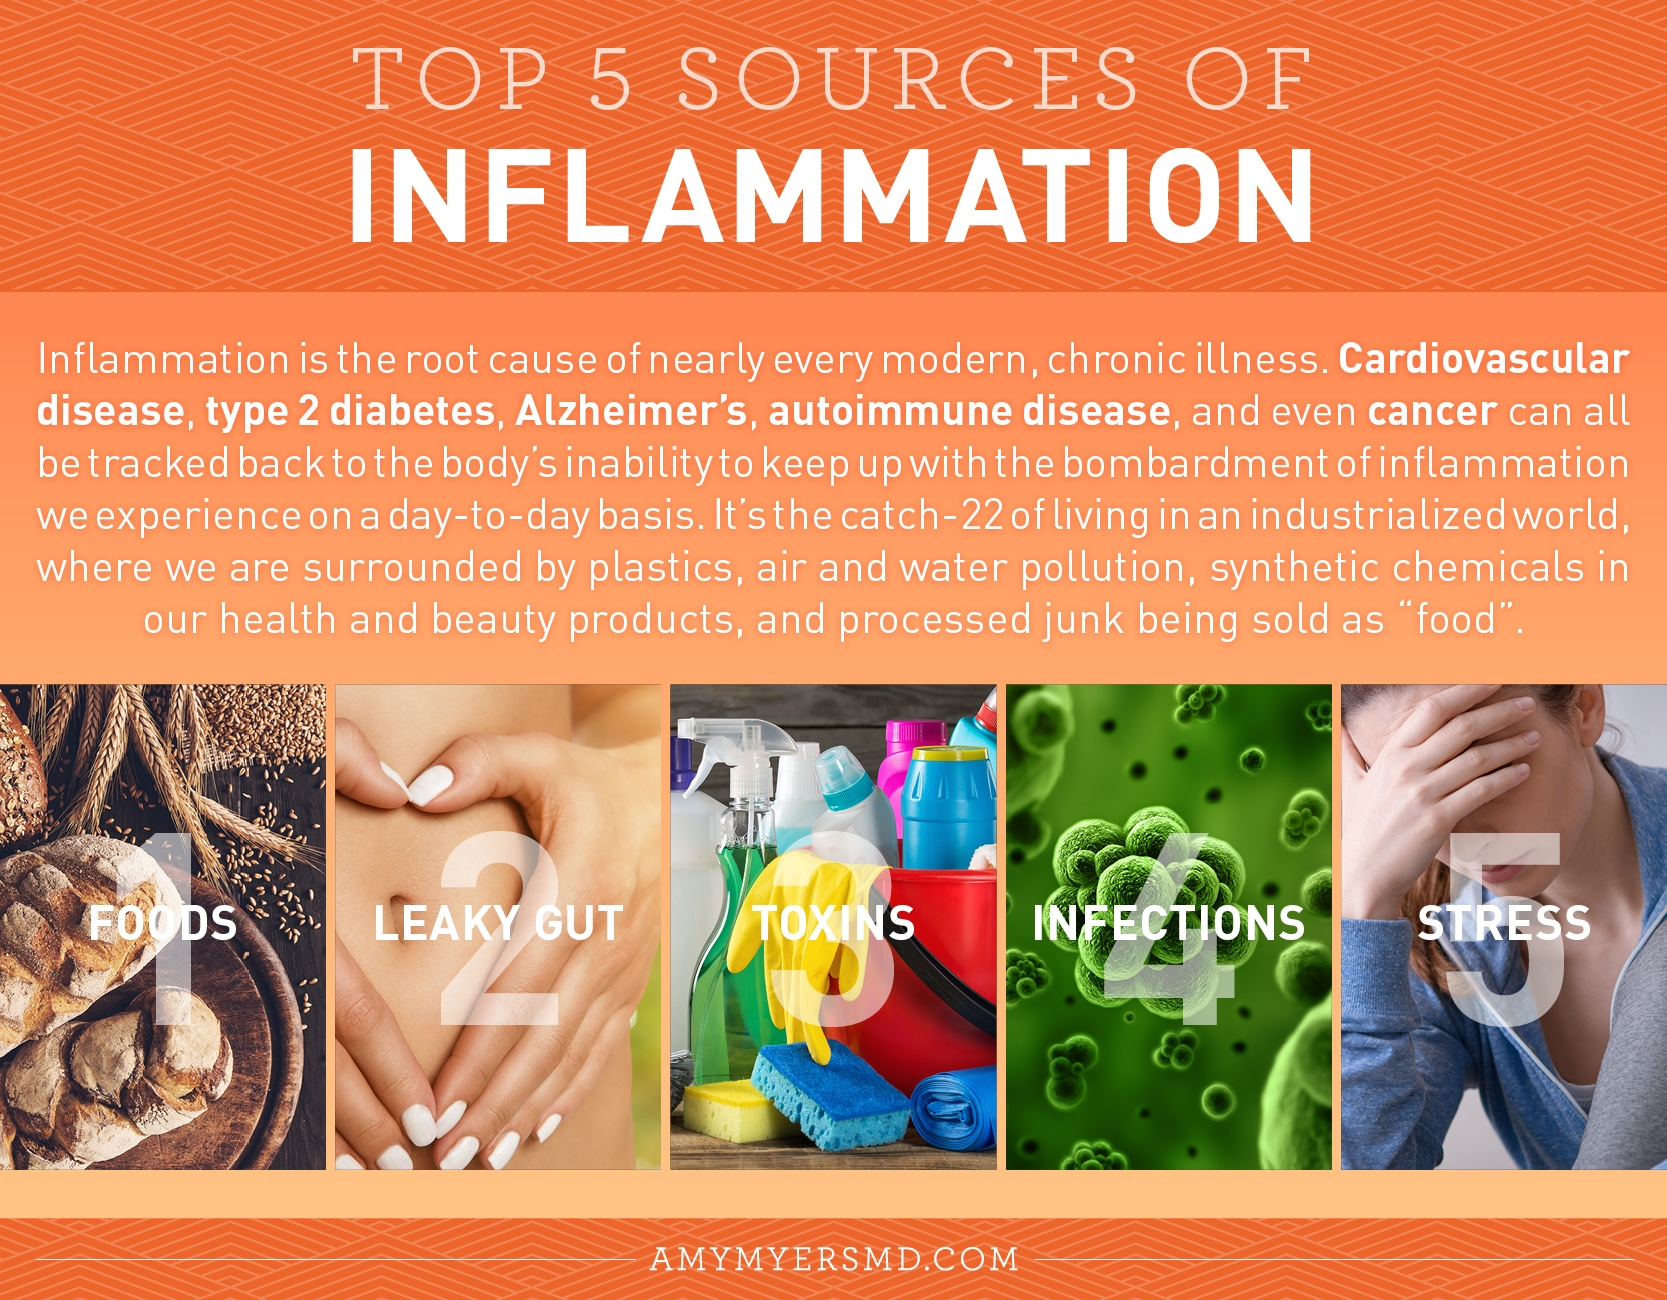 Top 5 Sources of inflammation - Infographic - Amy Myers MD